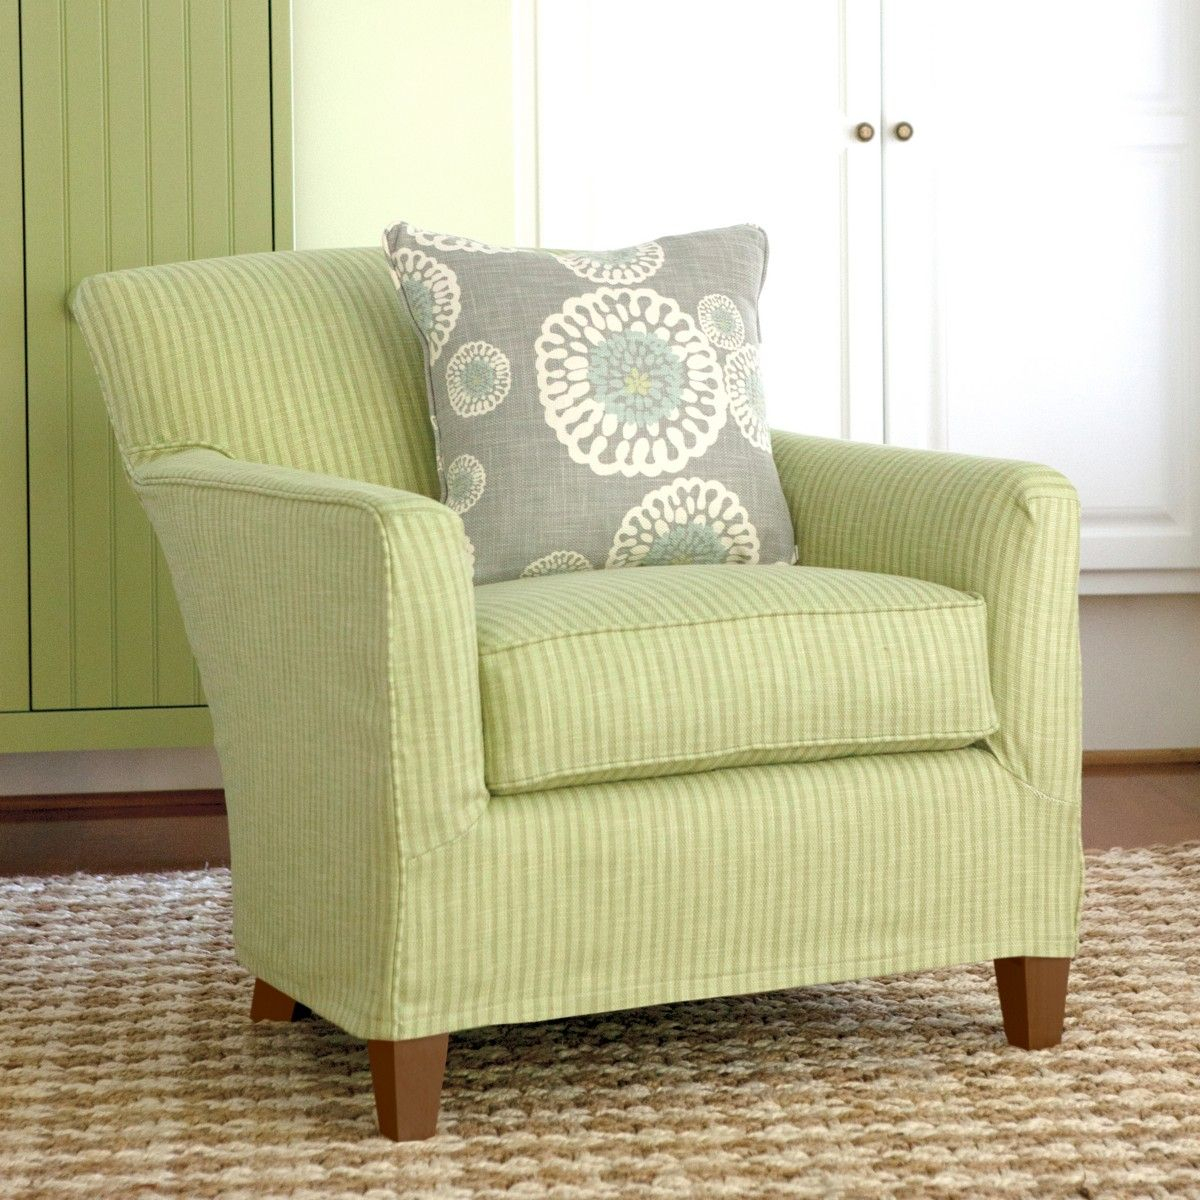 Nina Chair   Cottage Style Chair, Coastal Living Style With Cottage Style Sofas And Chairs (View 1 of 15)